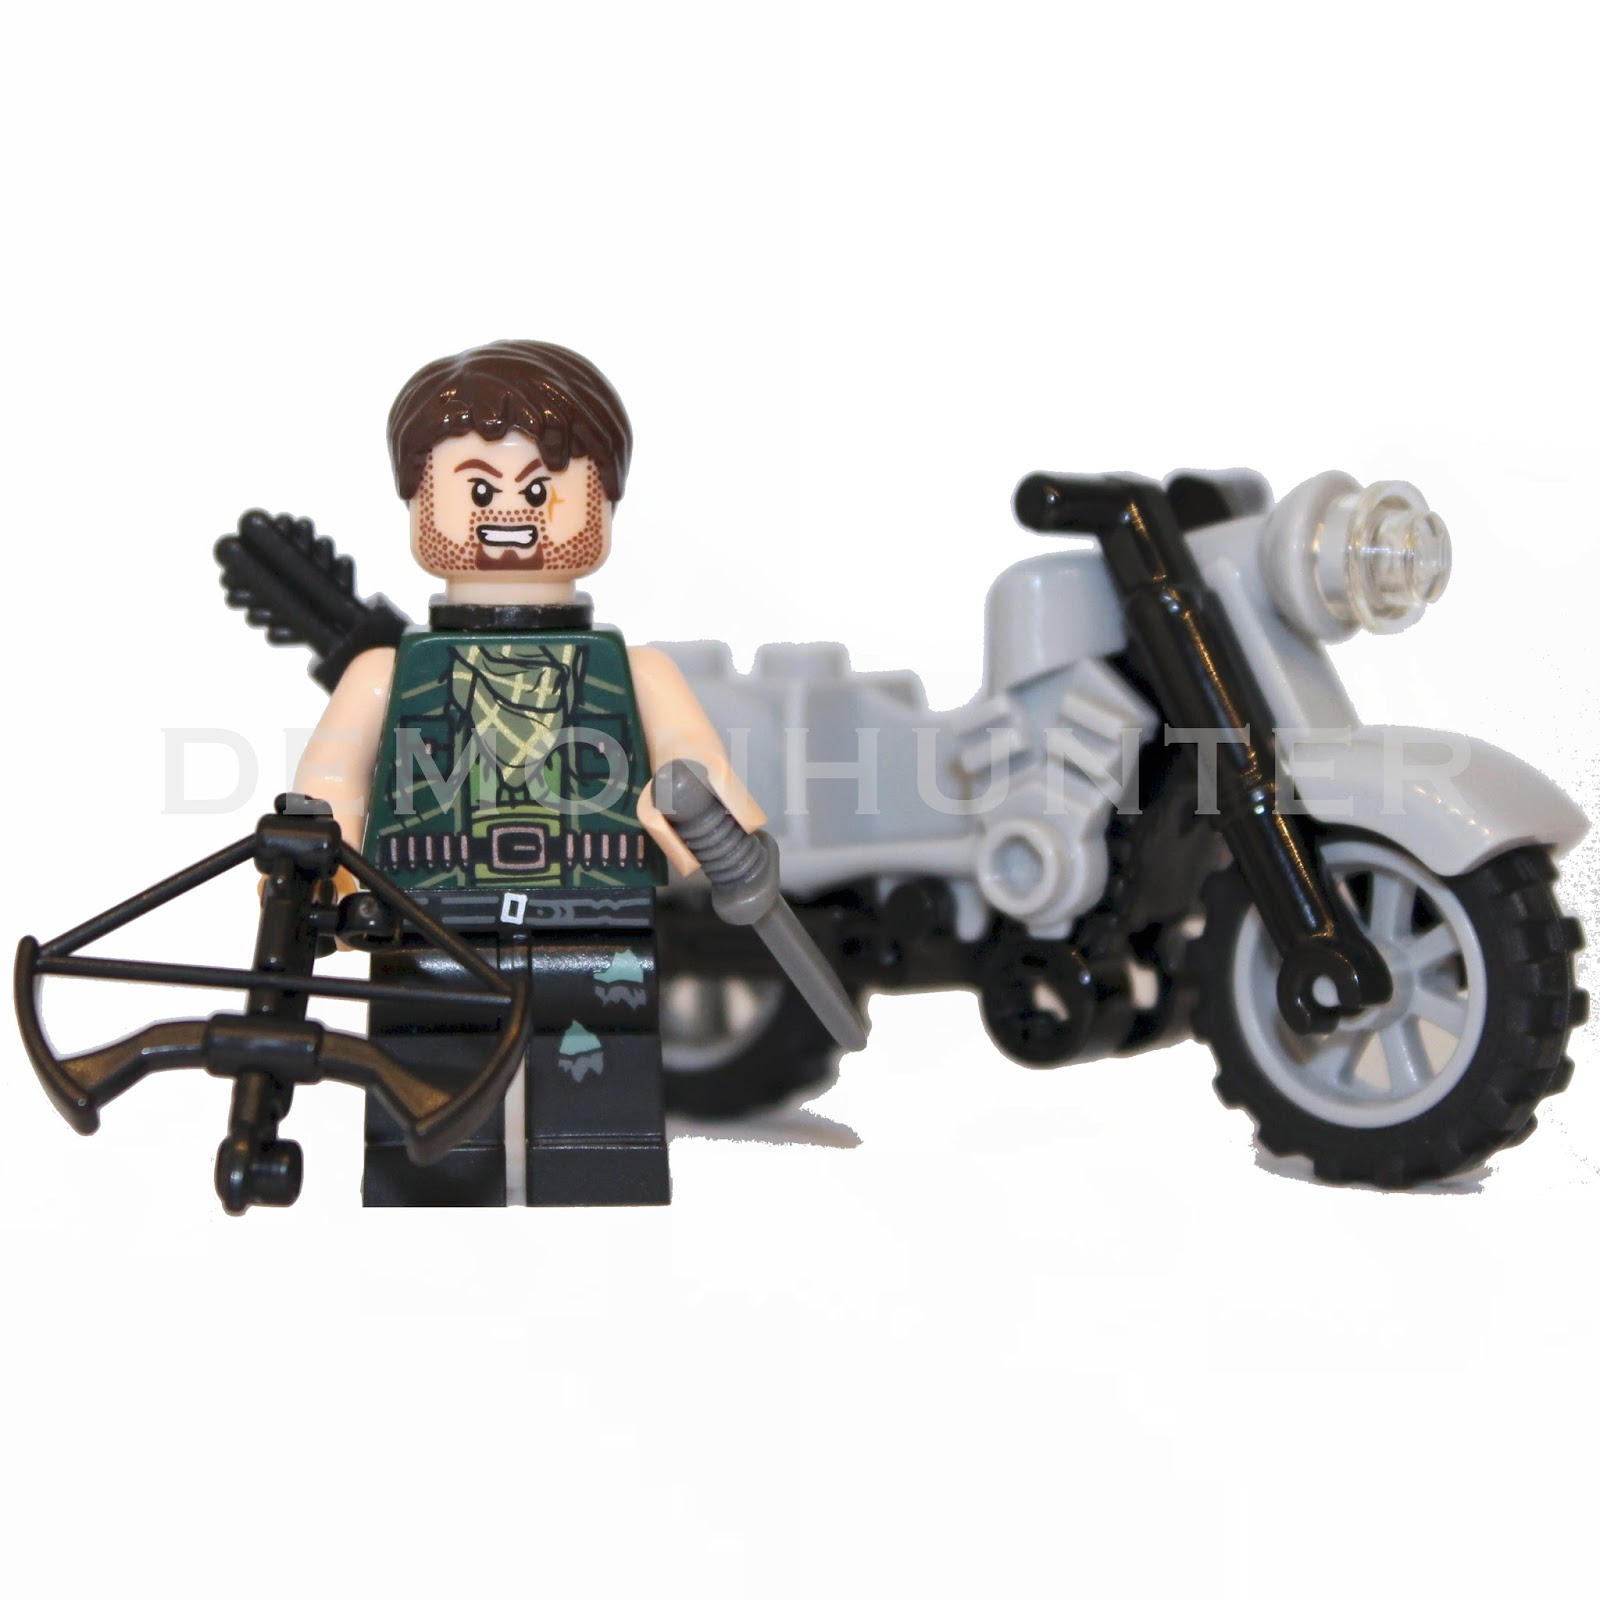 Lego Walking Dead, Lego Daryl The Walking Dead, Custom Lego, Walking Dead Lego, Daryl Dixon, The Walking Dead, Daryl Dixon Lego, Lego Blog